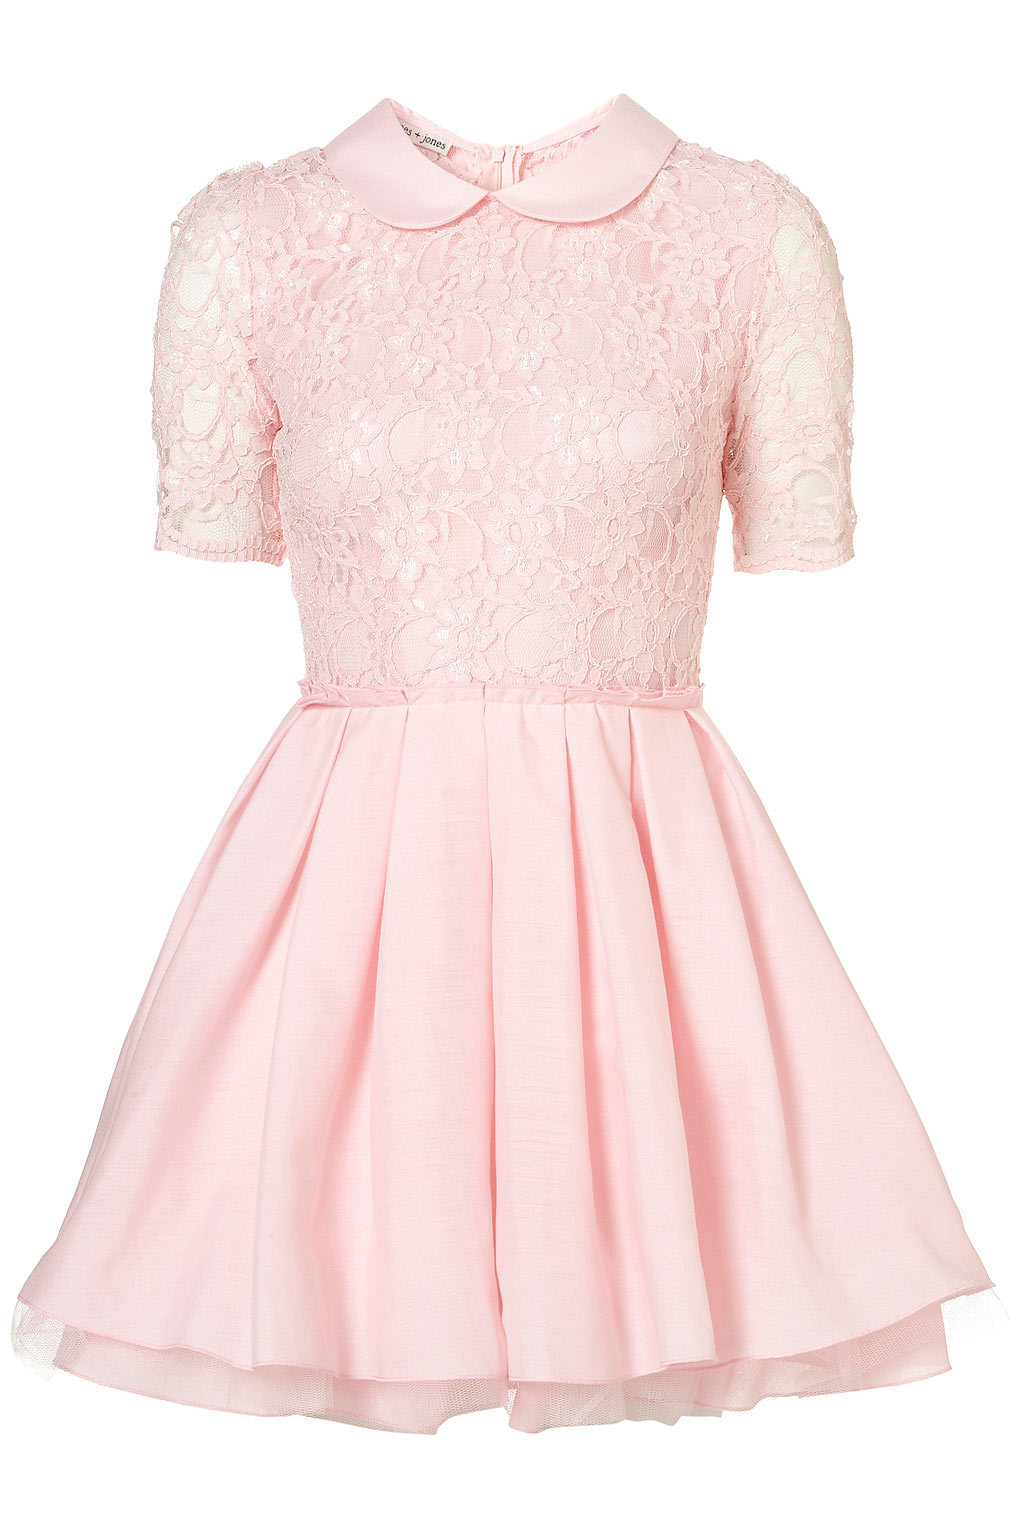 angeldollparts:  need this topshop dress, it's so lovely! why does it have to be £60?, I bought a new doll and now I have no money :/